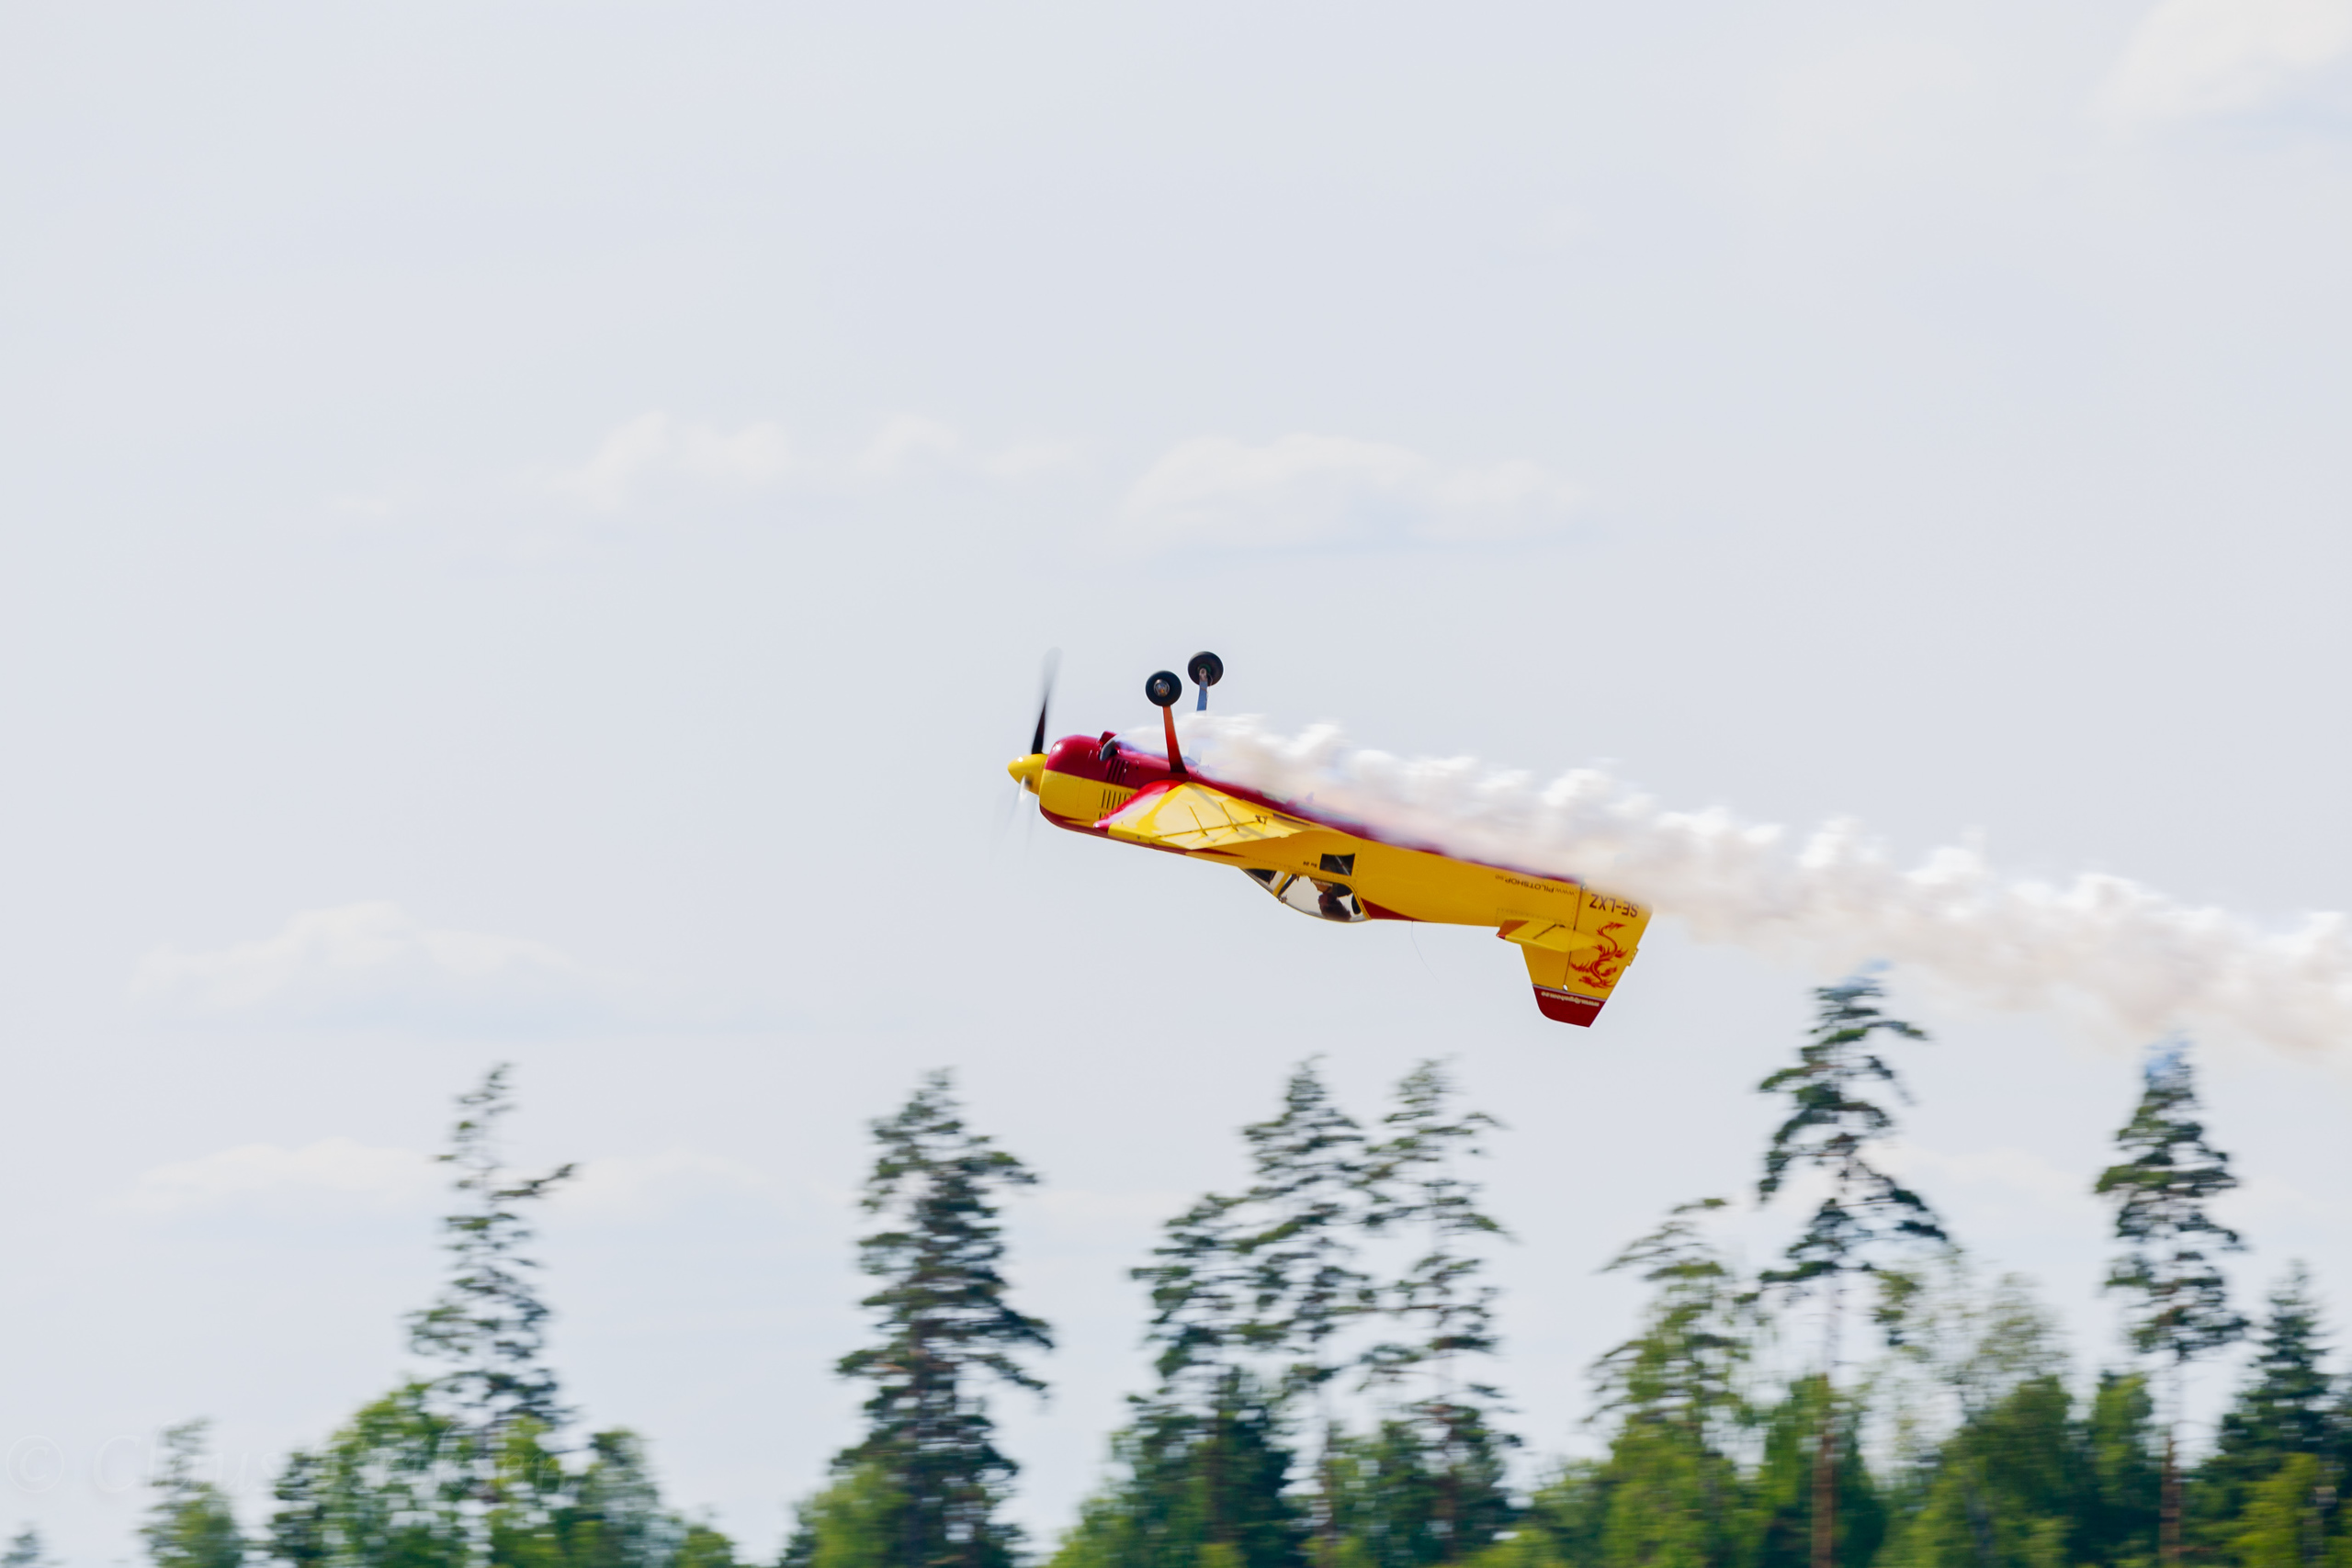 Inverted with smoke